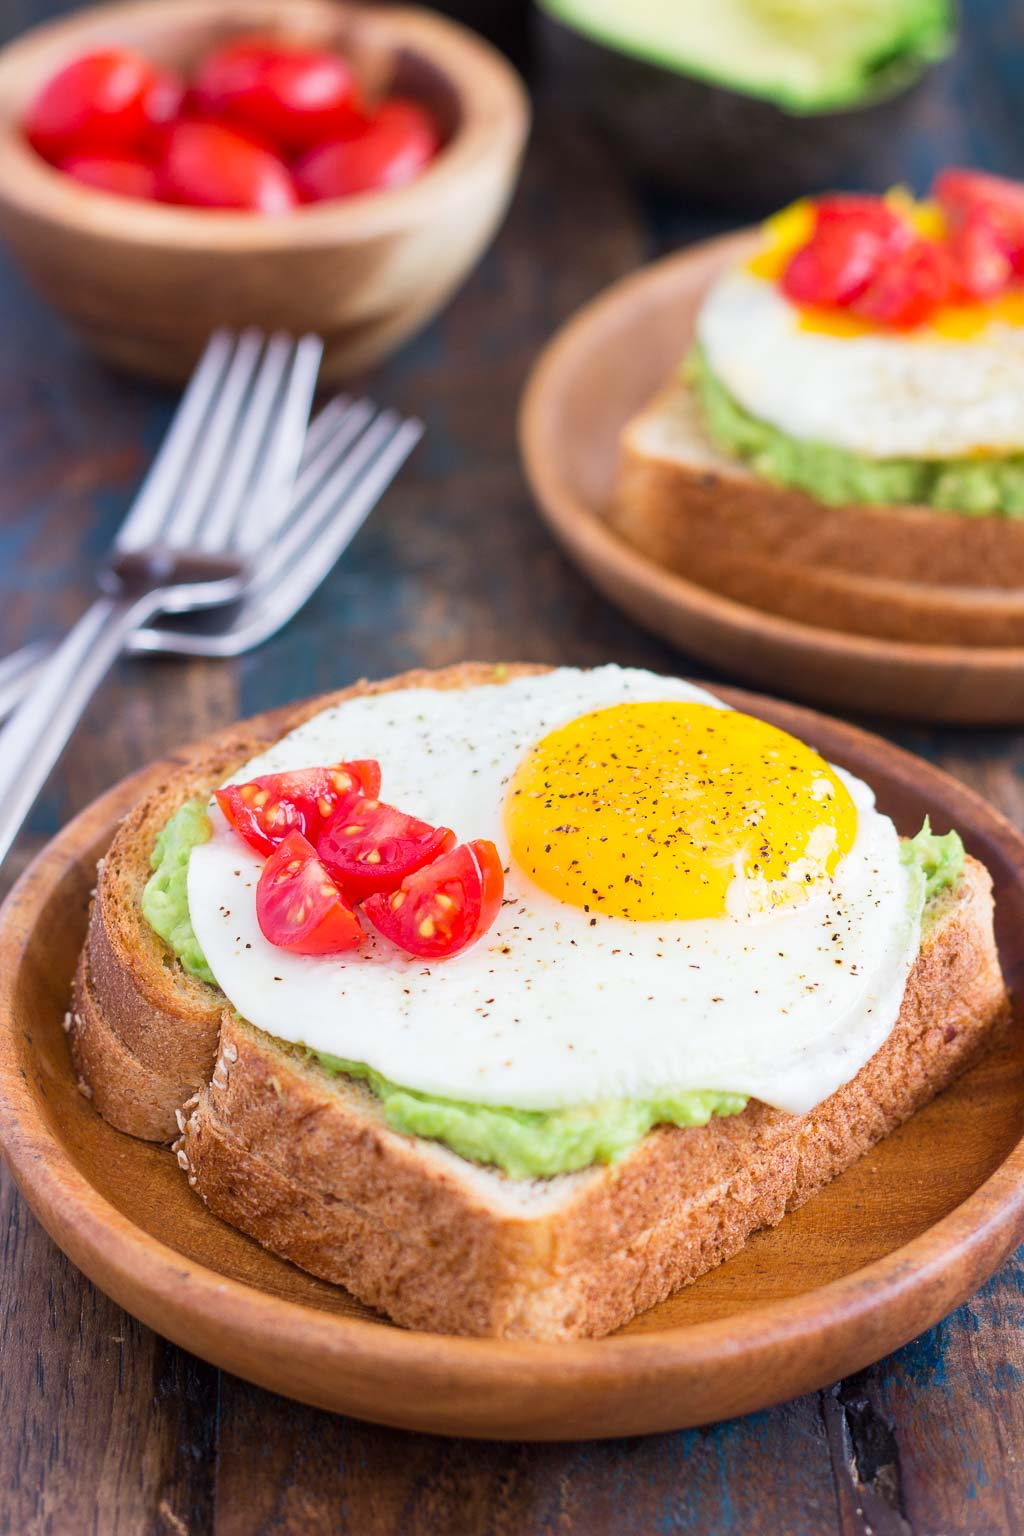 This Fried Egg and Avocado Toast is a deliciously simple way to jazz up your breakfast or snack. Hearty bread is toasted and then topped with mashed avocado, a fried egg, and cherry tomatoes. It's ready in just minutes and is full of healthy ingredients!